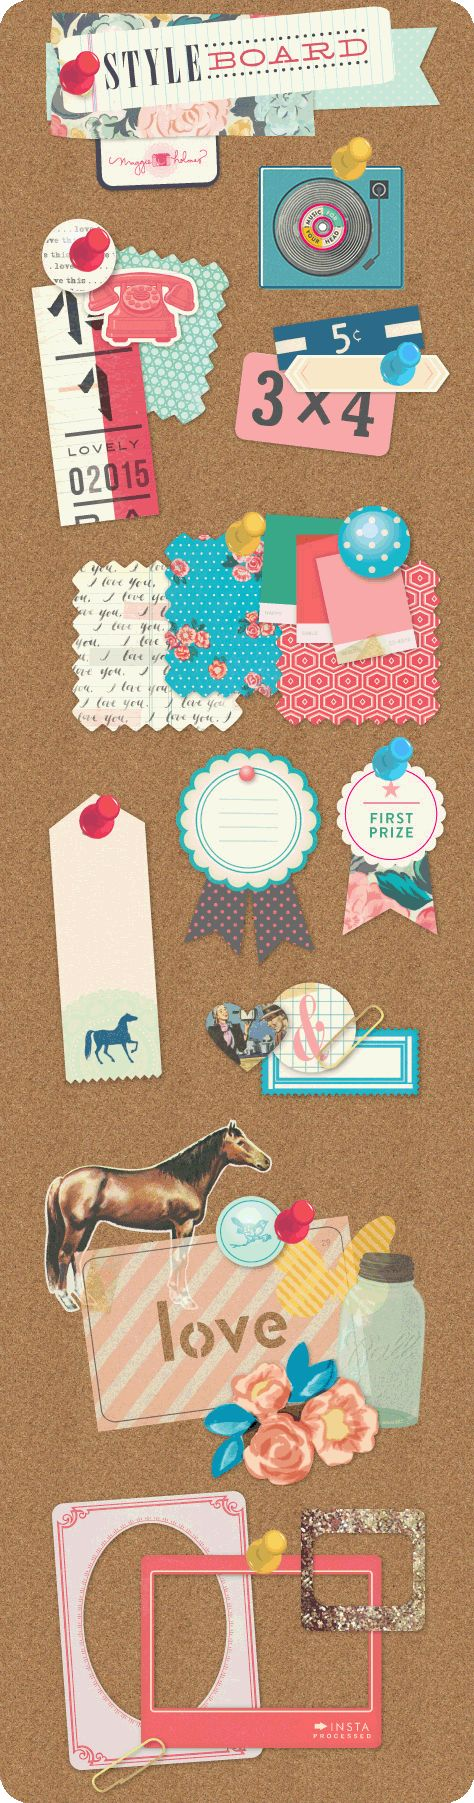 Styleboard - Crate Paper